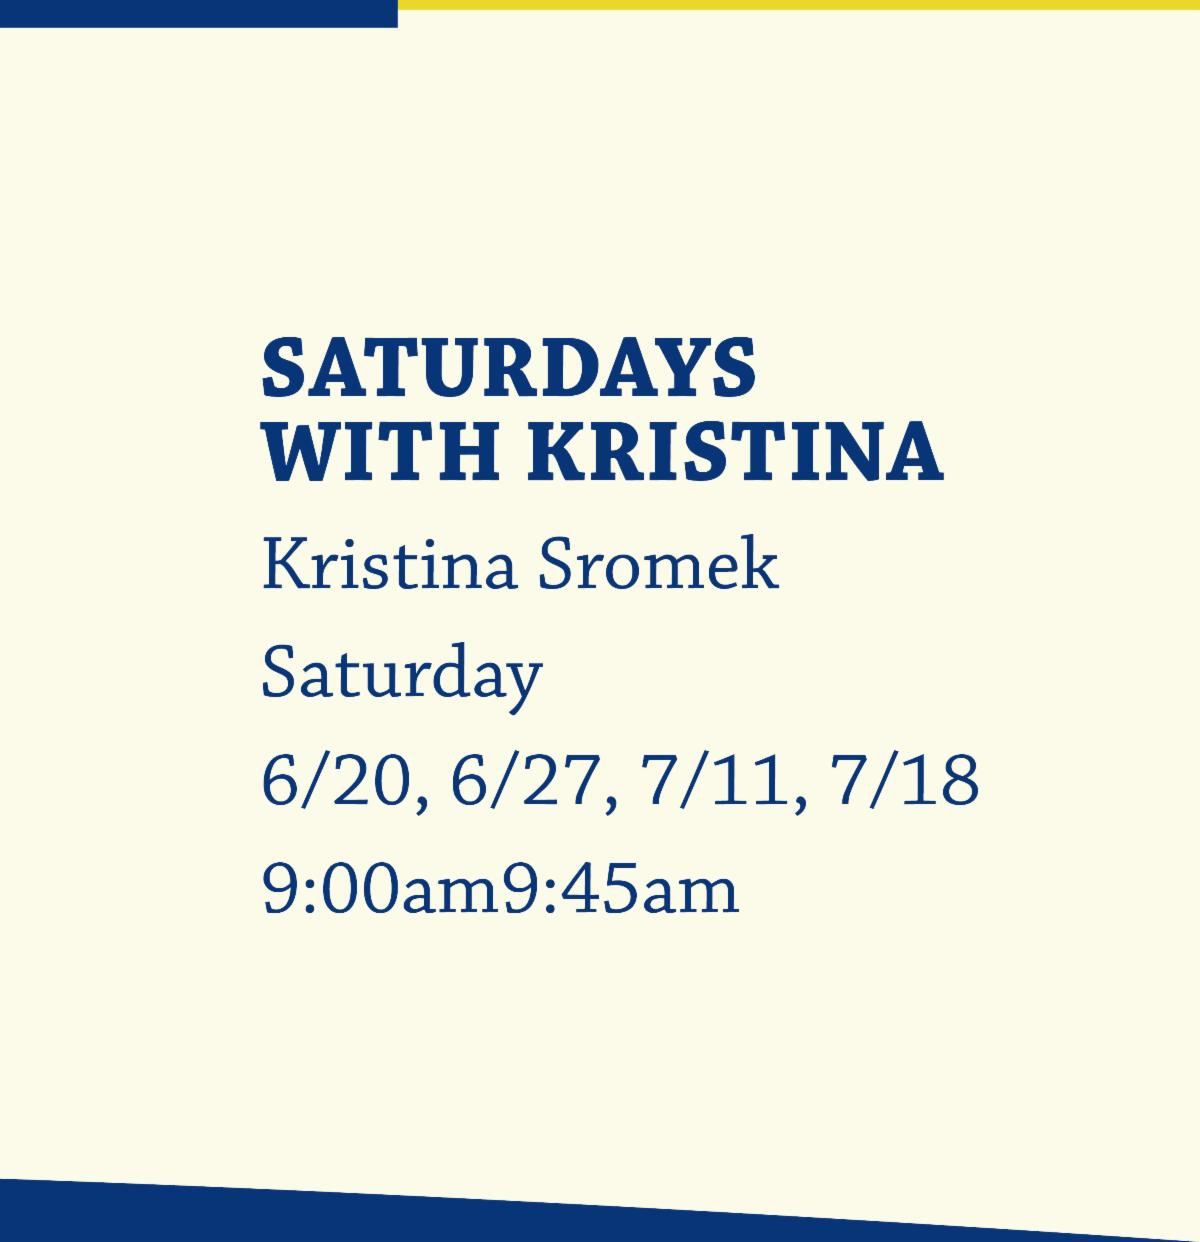 Saturdays with Kristina from 9:00am-9:45am